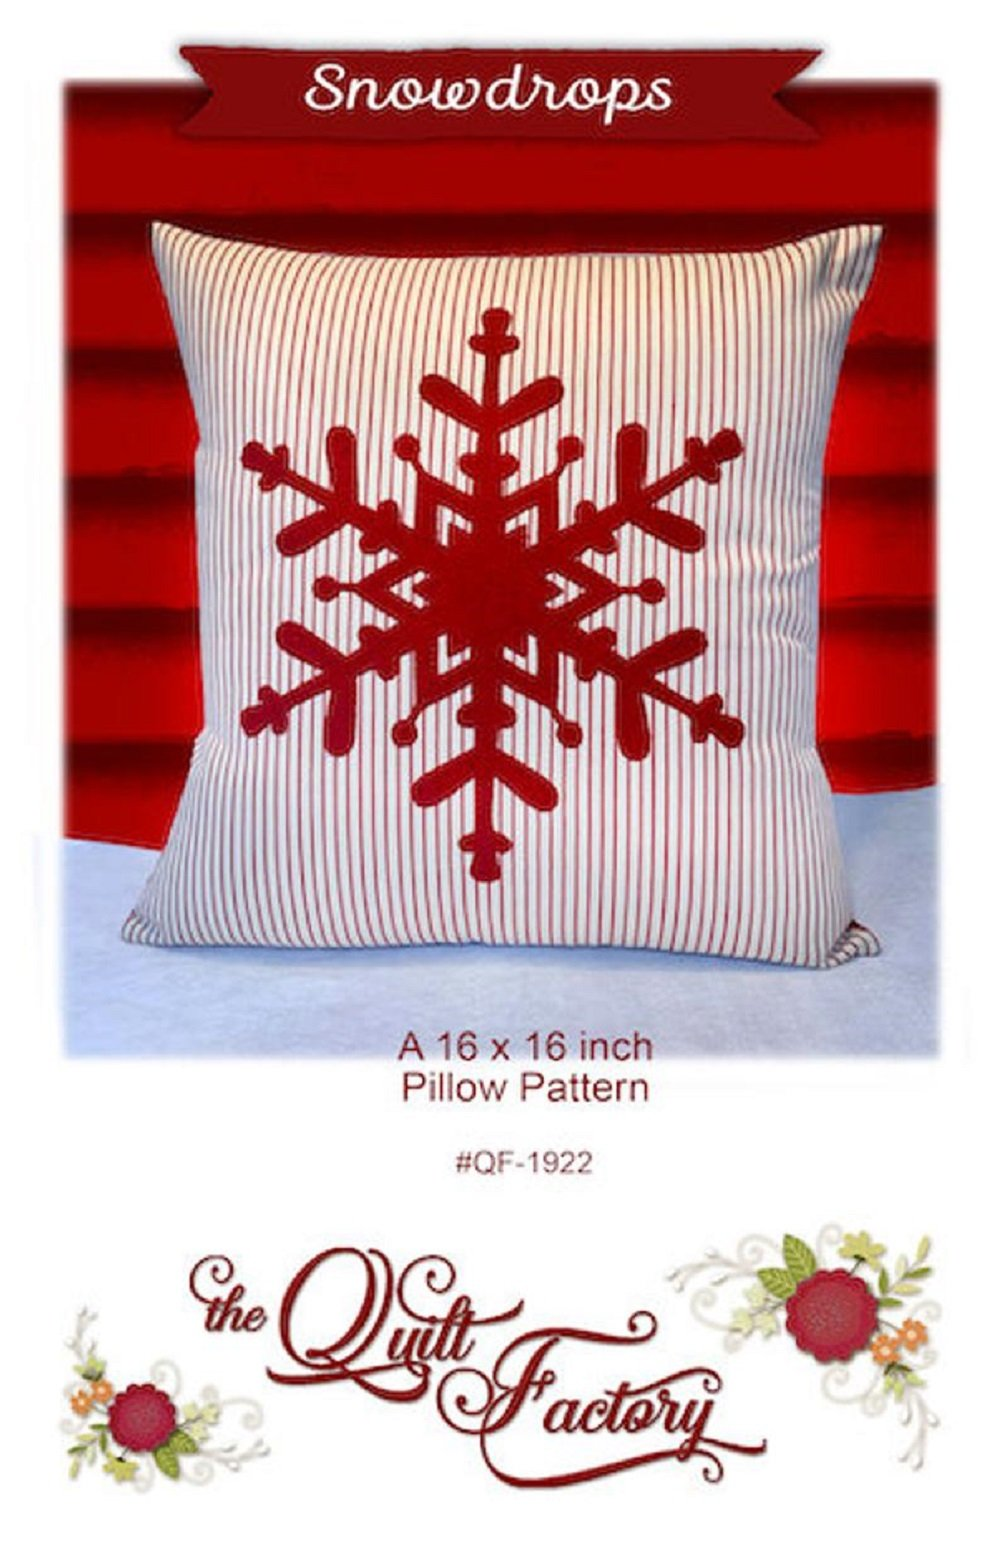 Snowdrops Pillow Pattern by The Quilt Factory